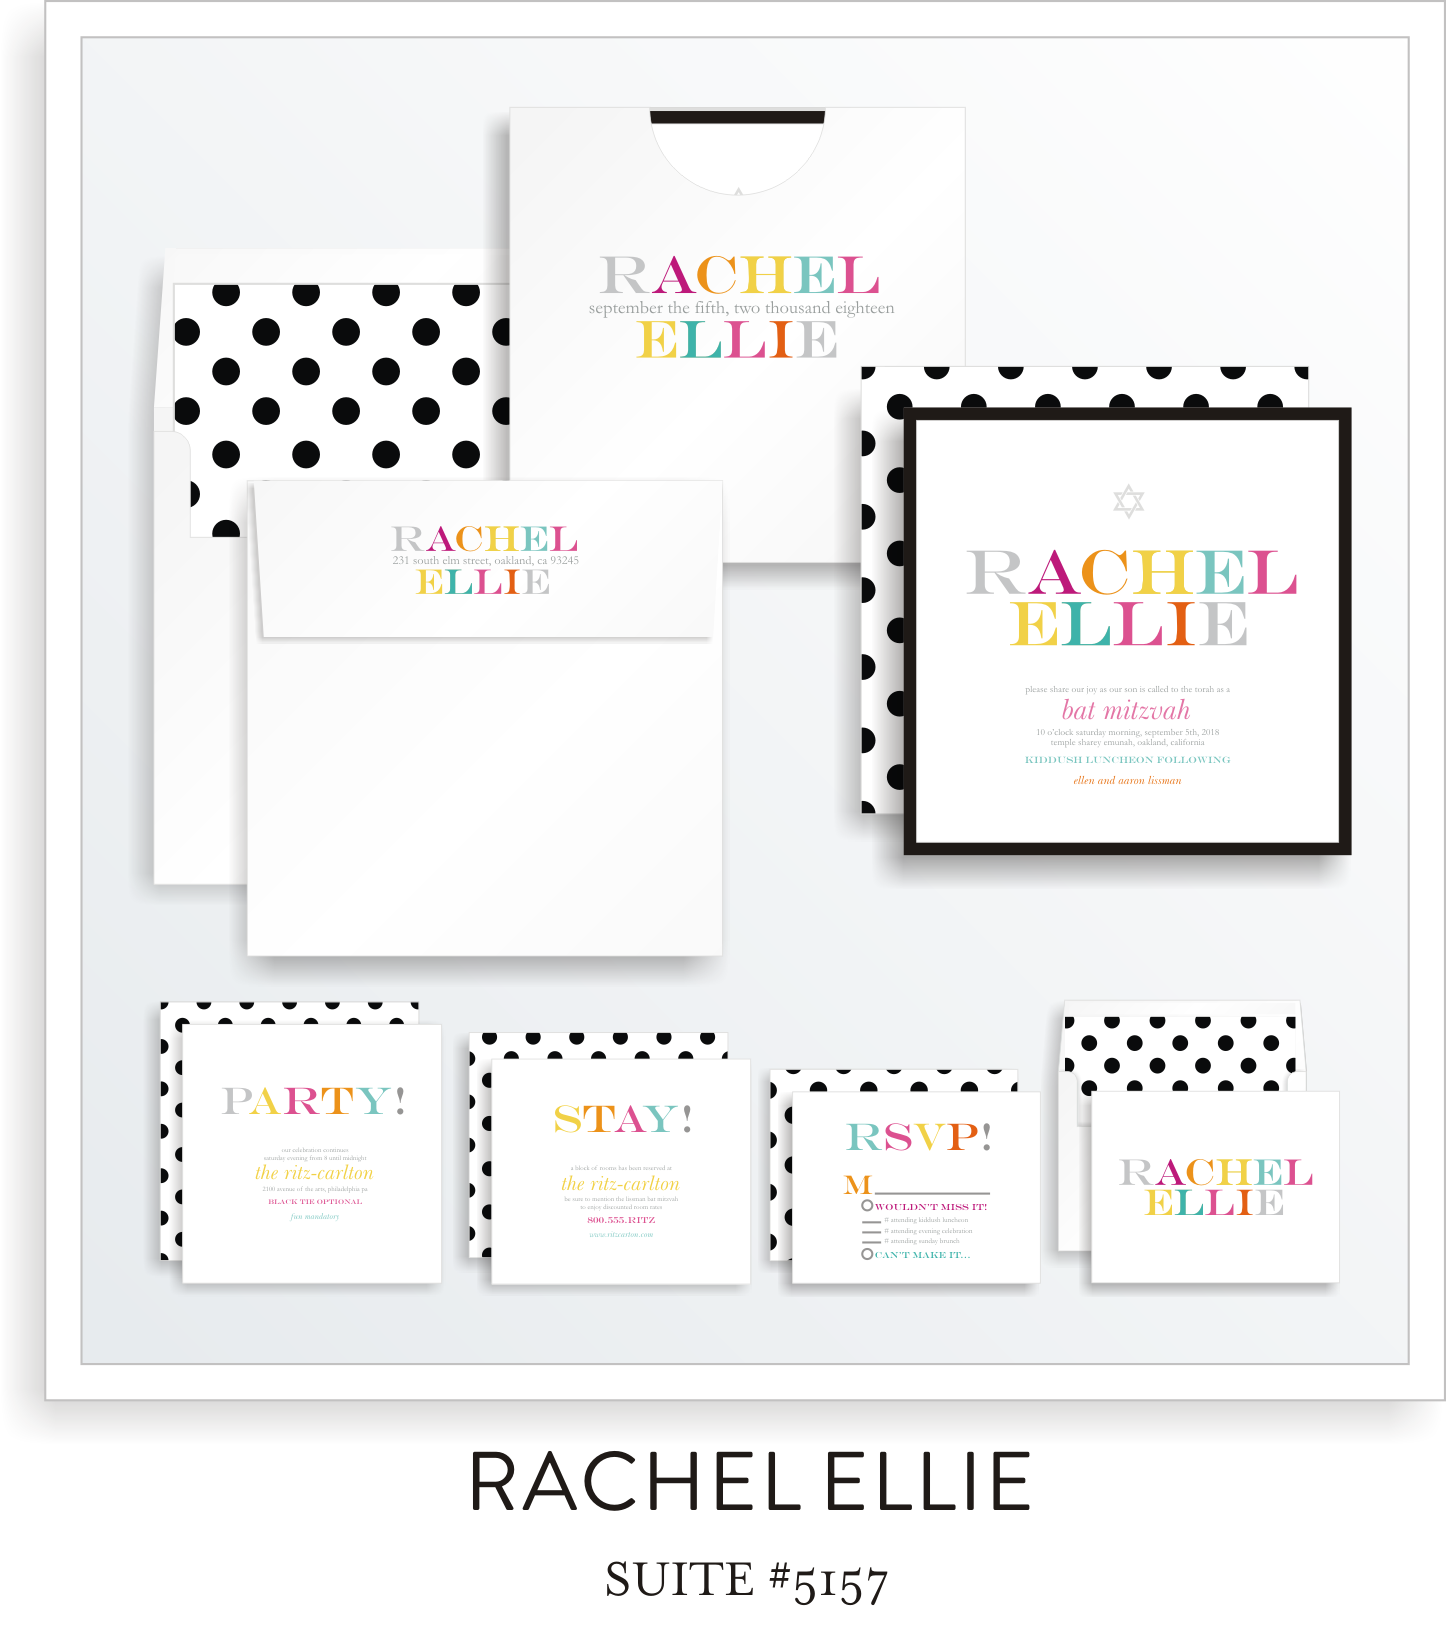 Copy of Bat Mitzvah Invitation Suite 5157 - Rachel Ellie